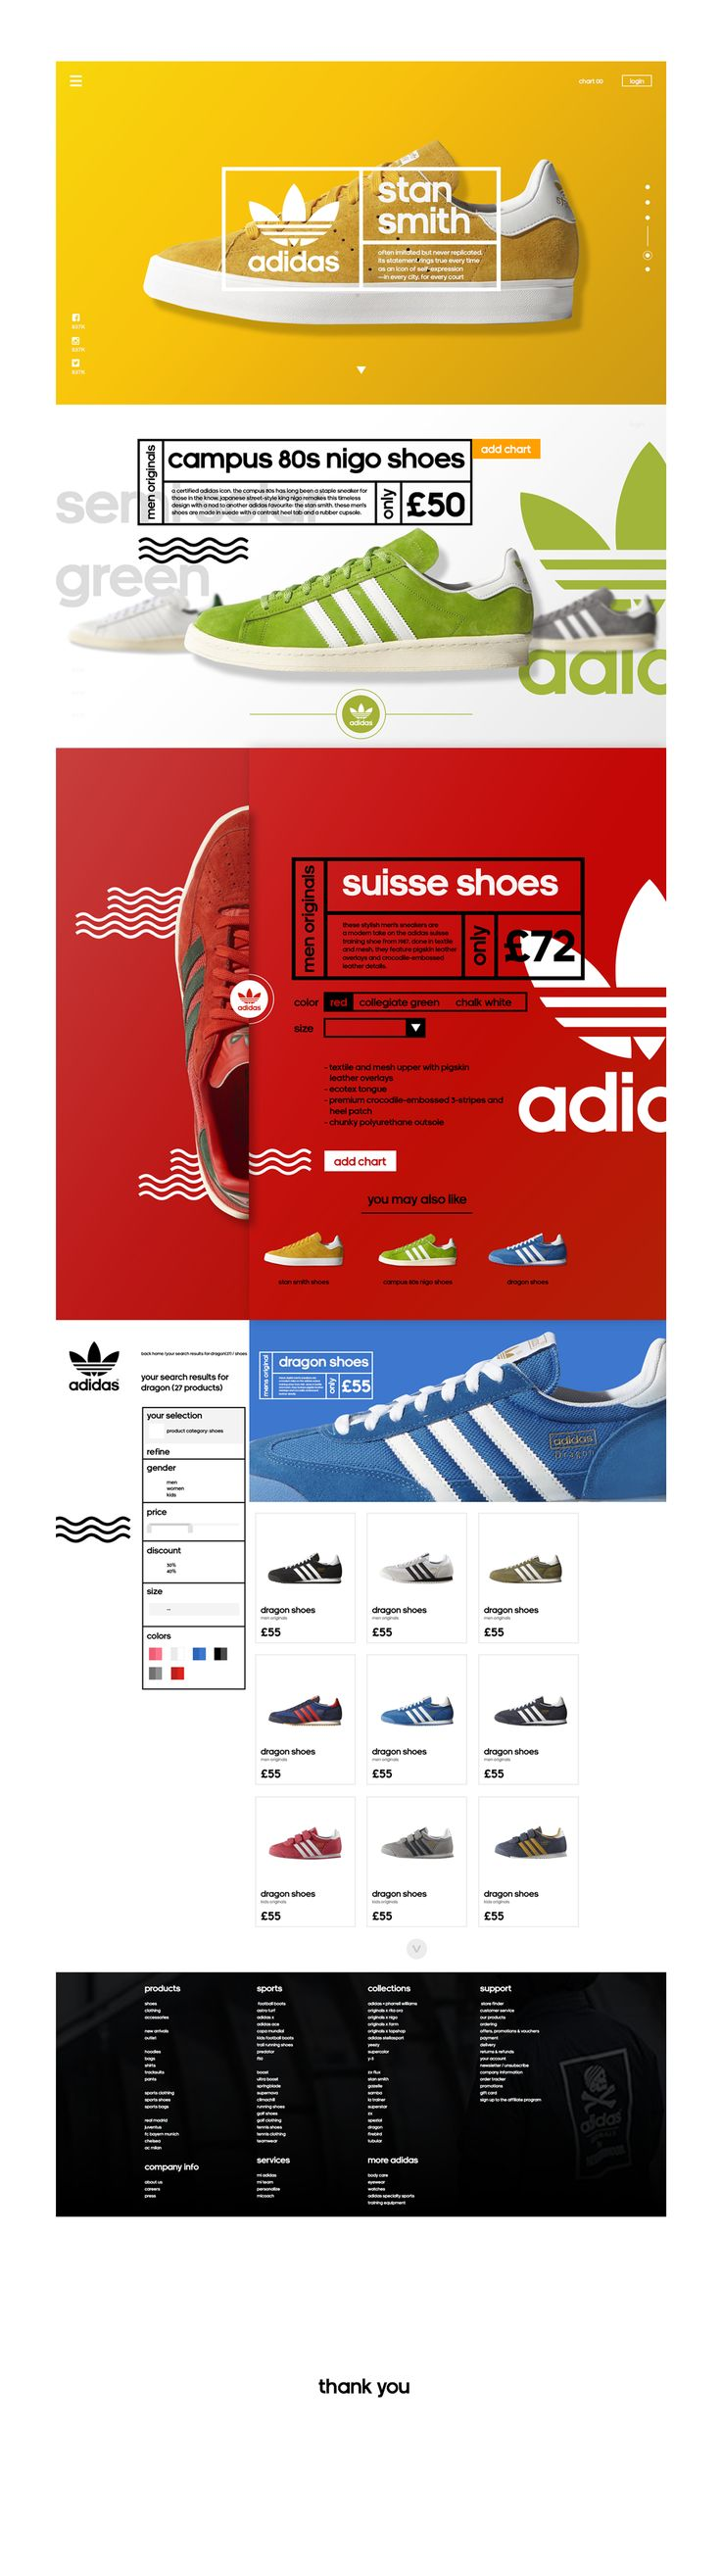 Adidas - Redesign Concept on Behance